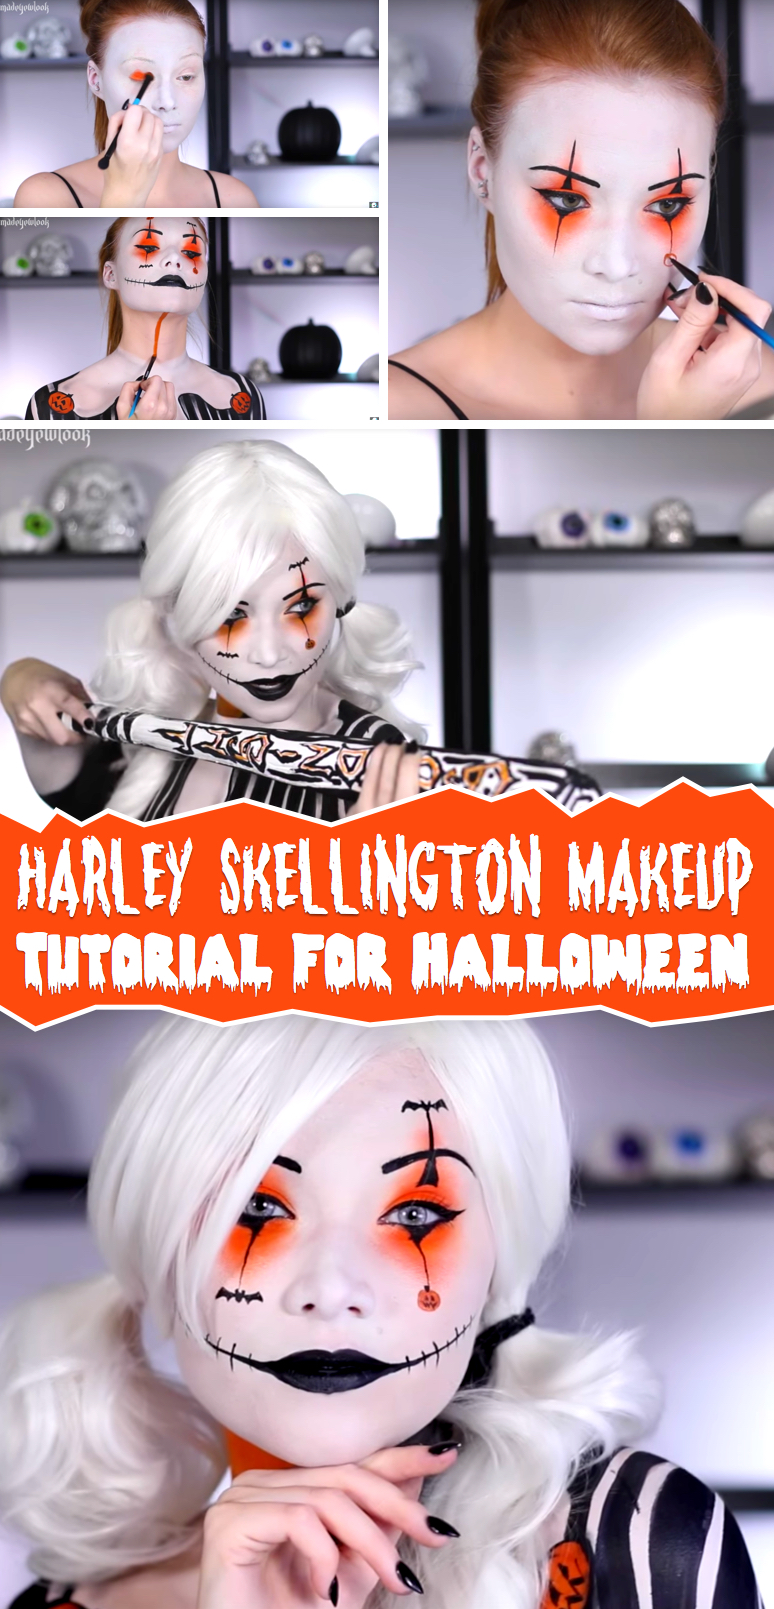 This Halloween, Transform Yourself Into the Wickedly Glamorous Harley Quinn Skellington!